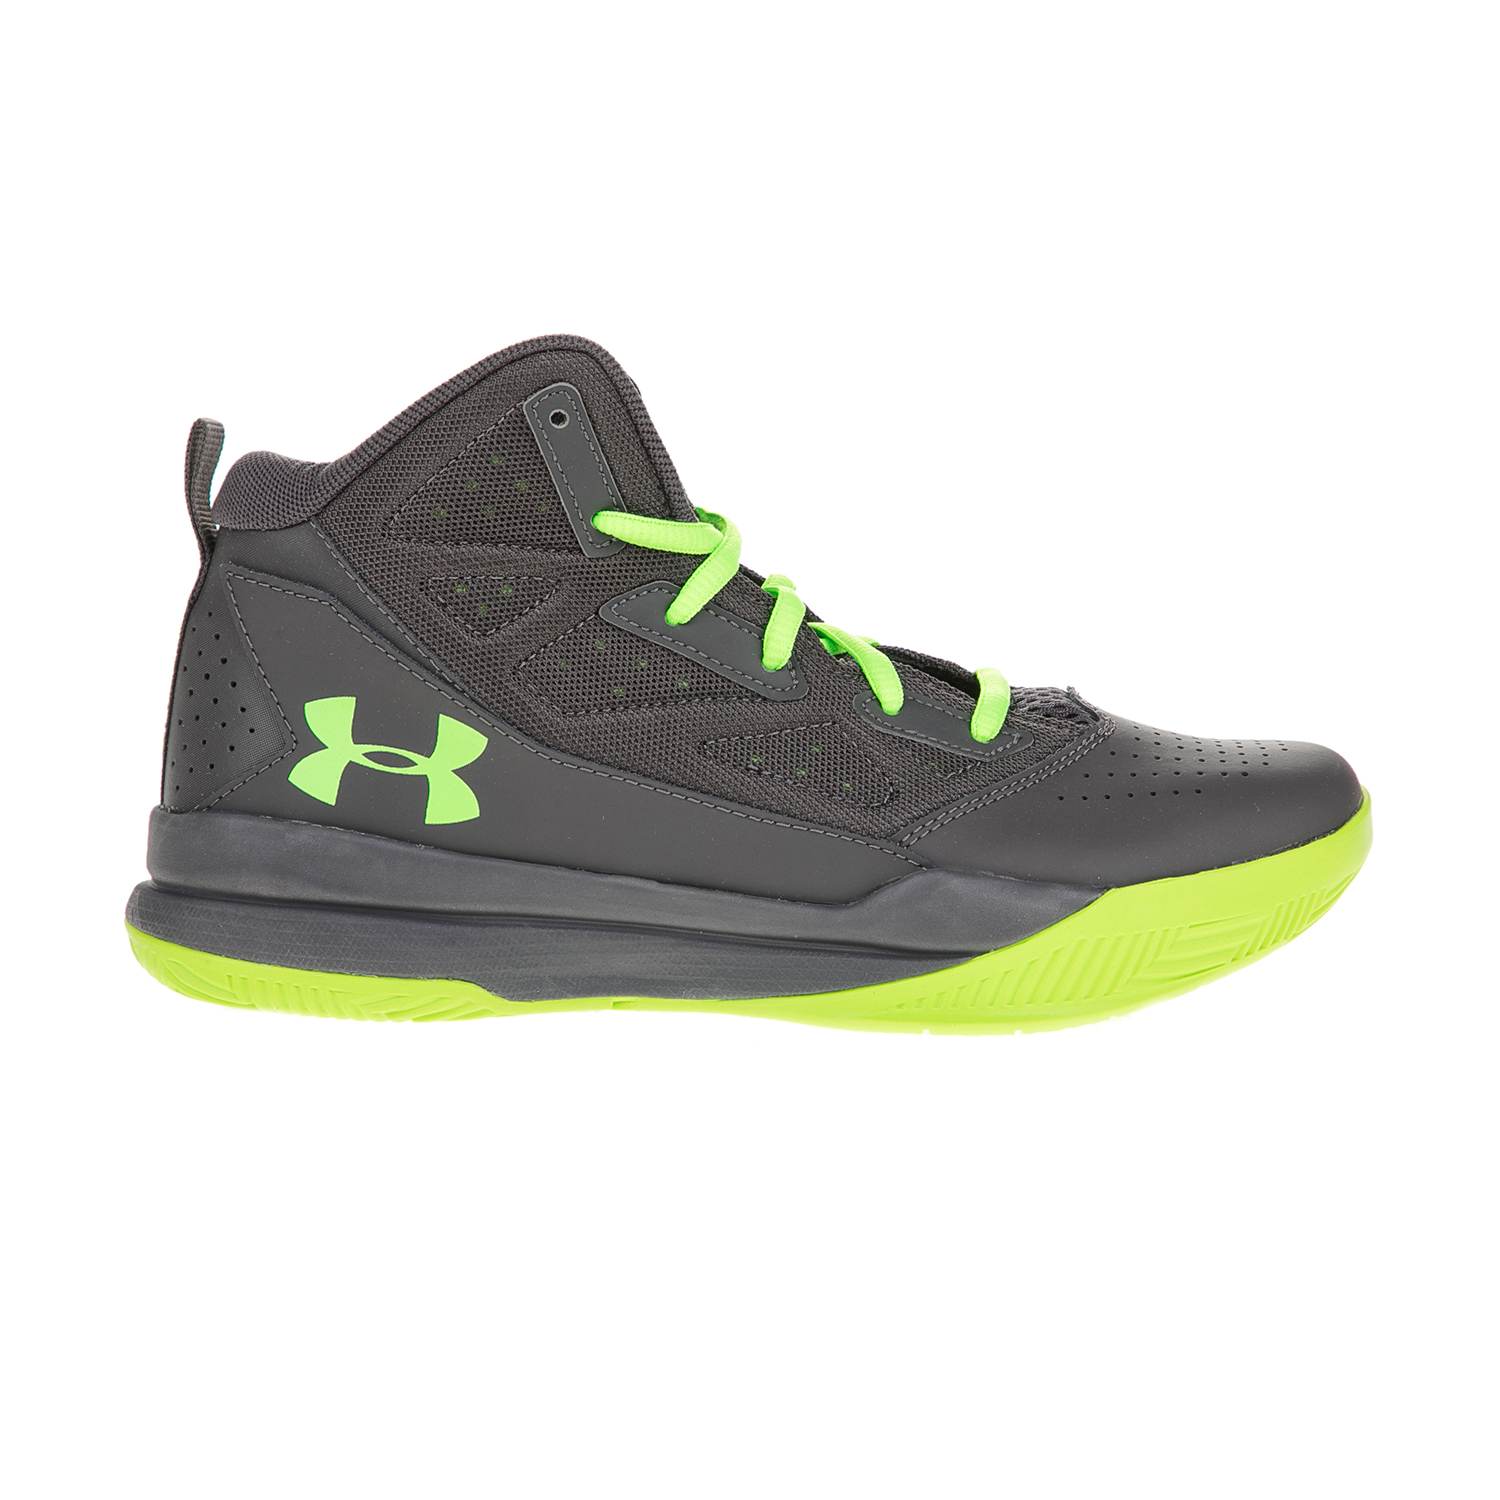 UNDER ARMOUR – Αγορίστικα αθλητικά παπούτσια UNDER ARMOUR BGS Jet Mid μαύρα